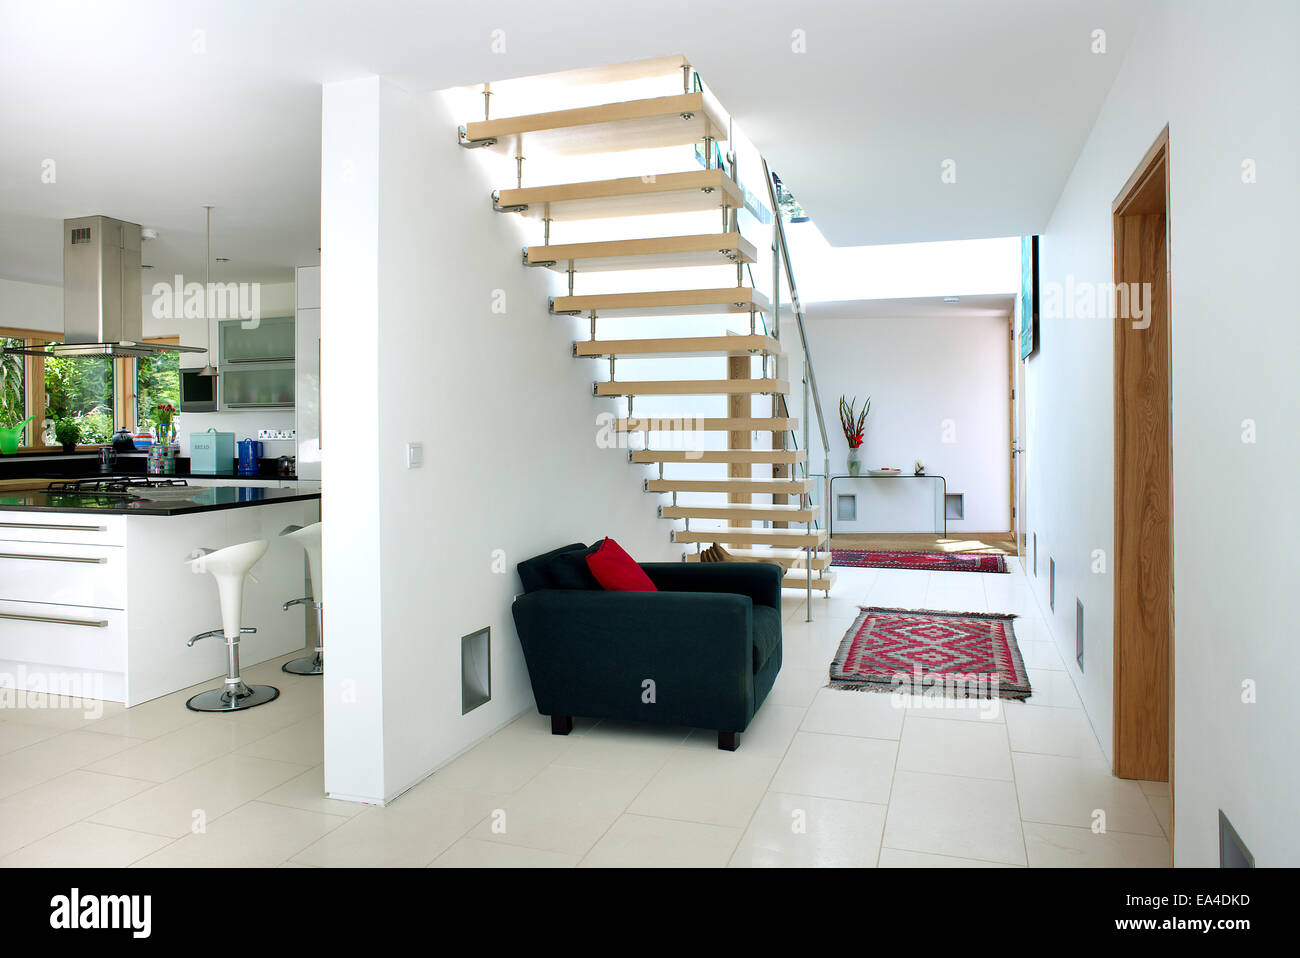 plan view house uk stock photos & plan view house uk stock images